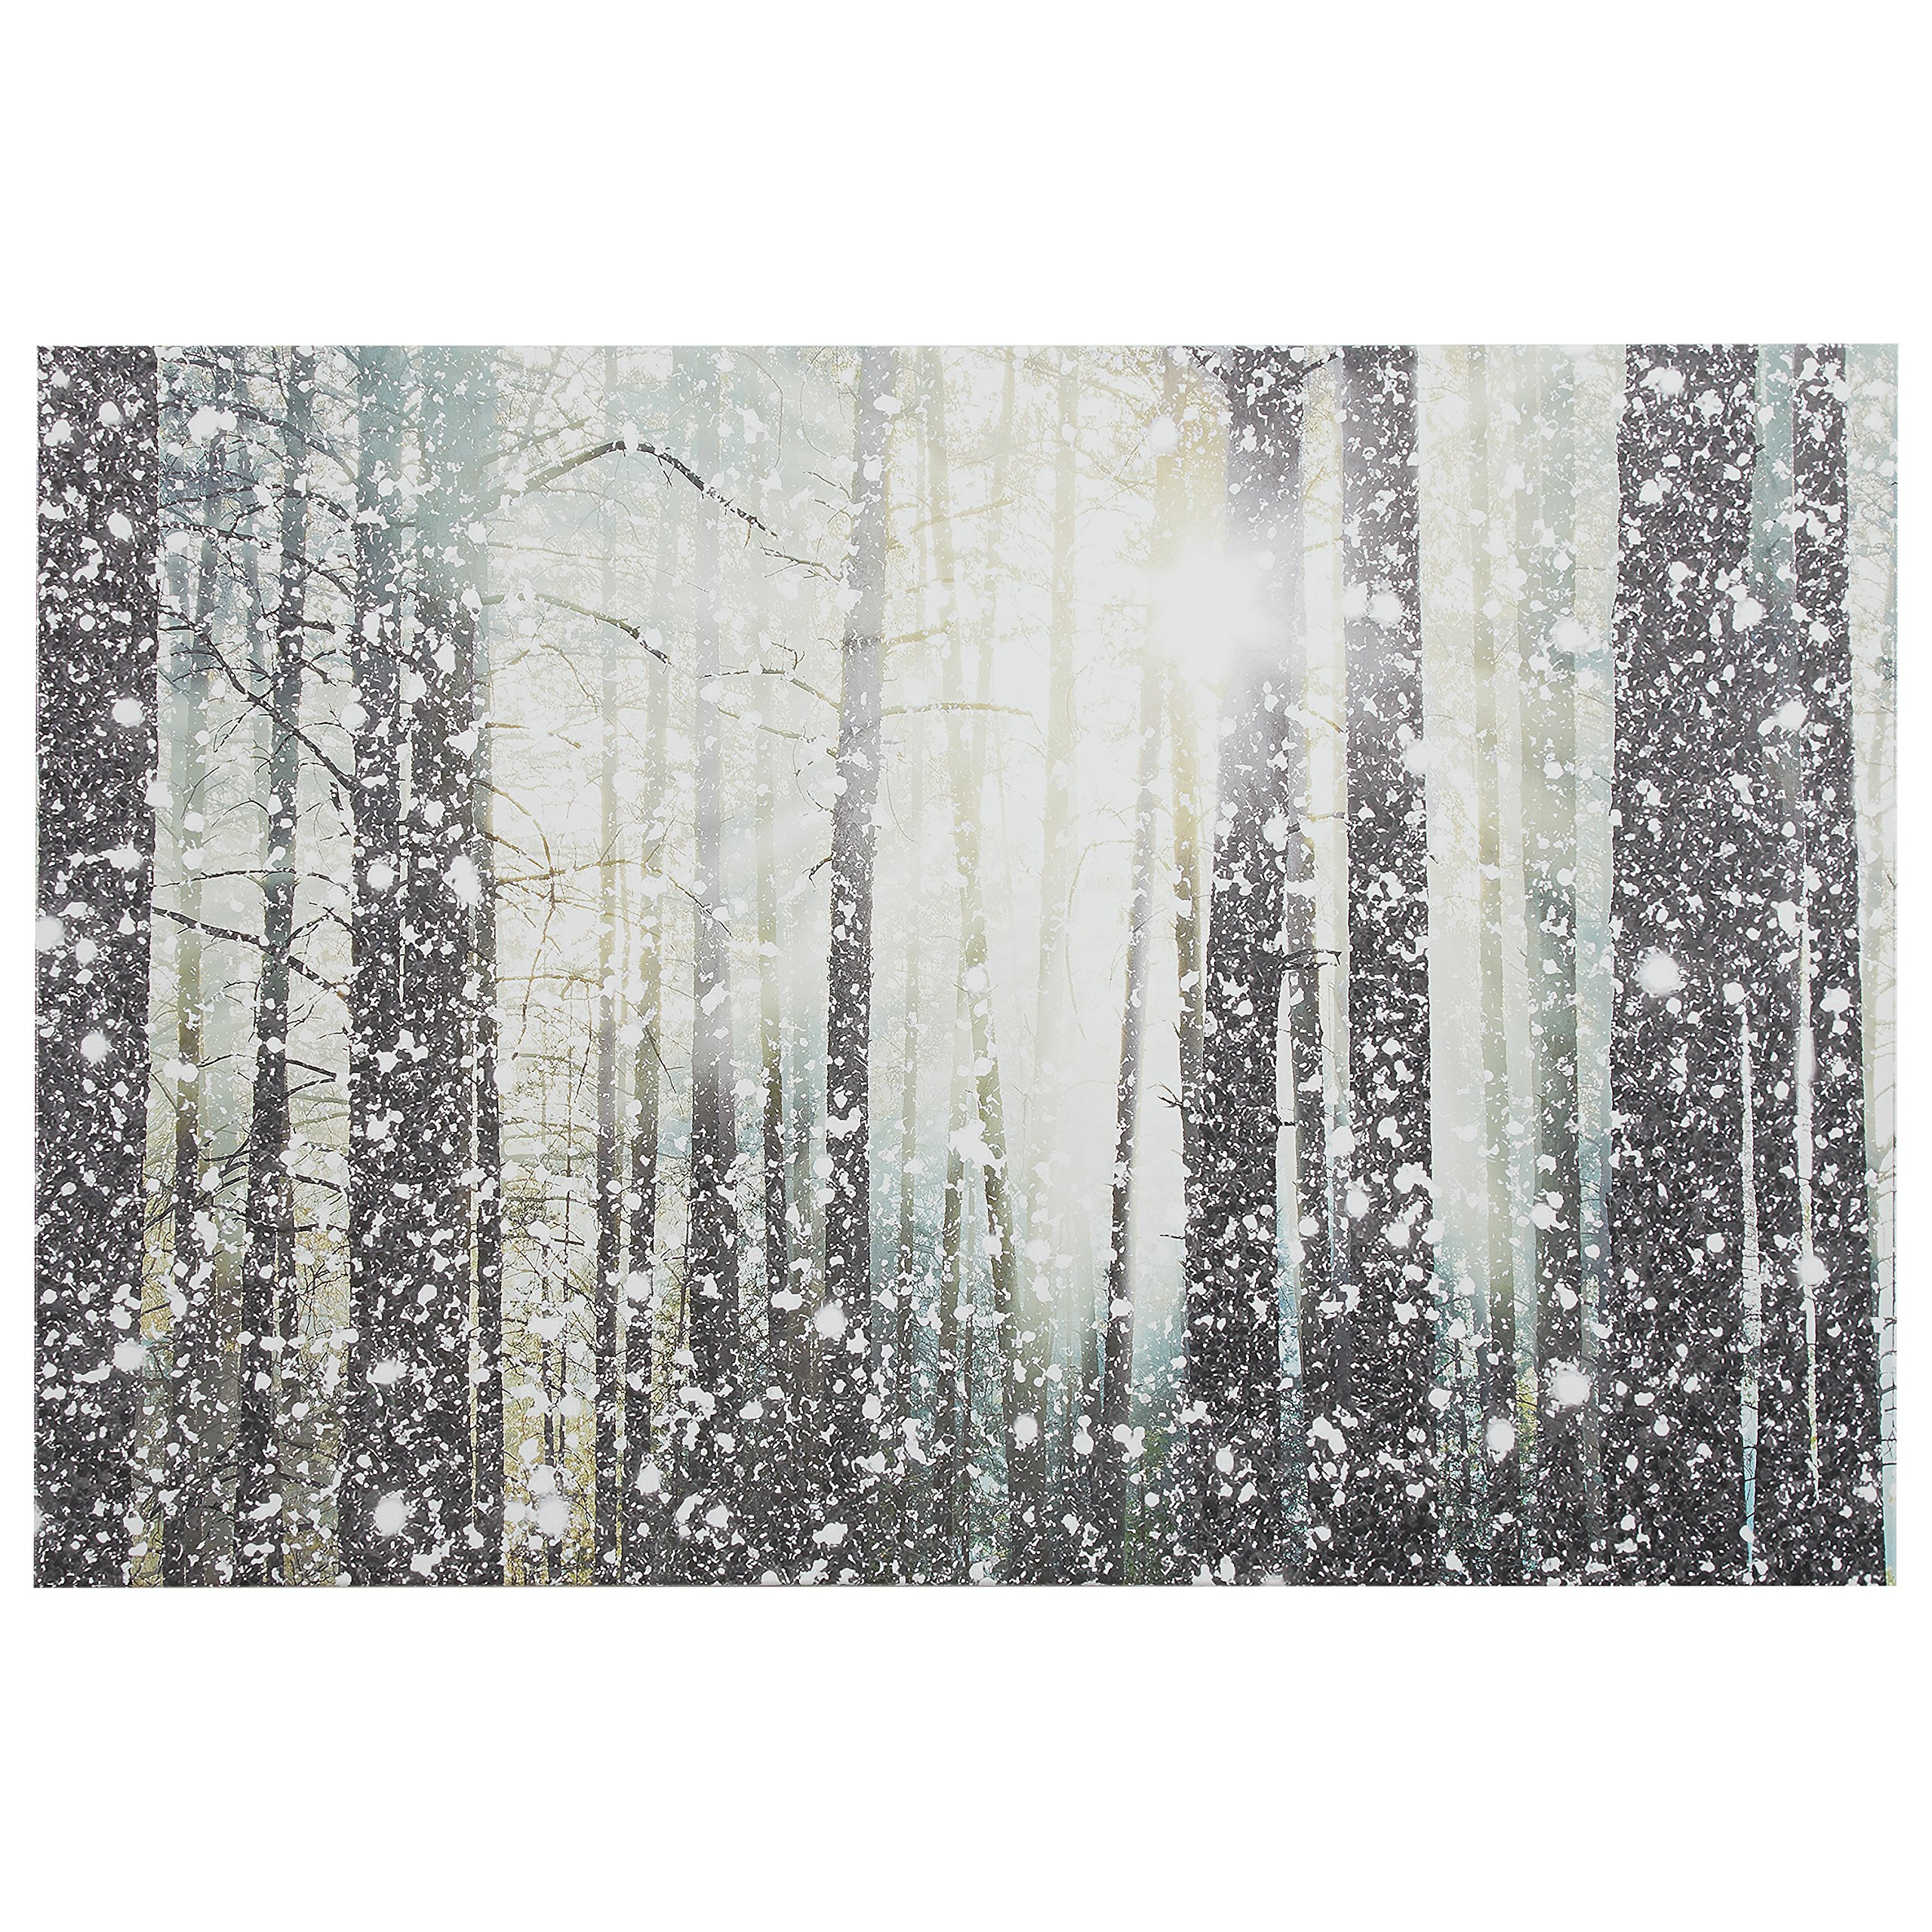 Modern Silver and White Forest Print on Canvas, 36'' x 24''